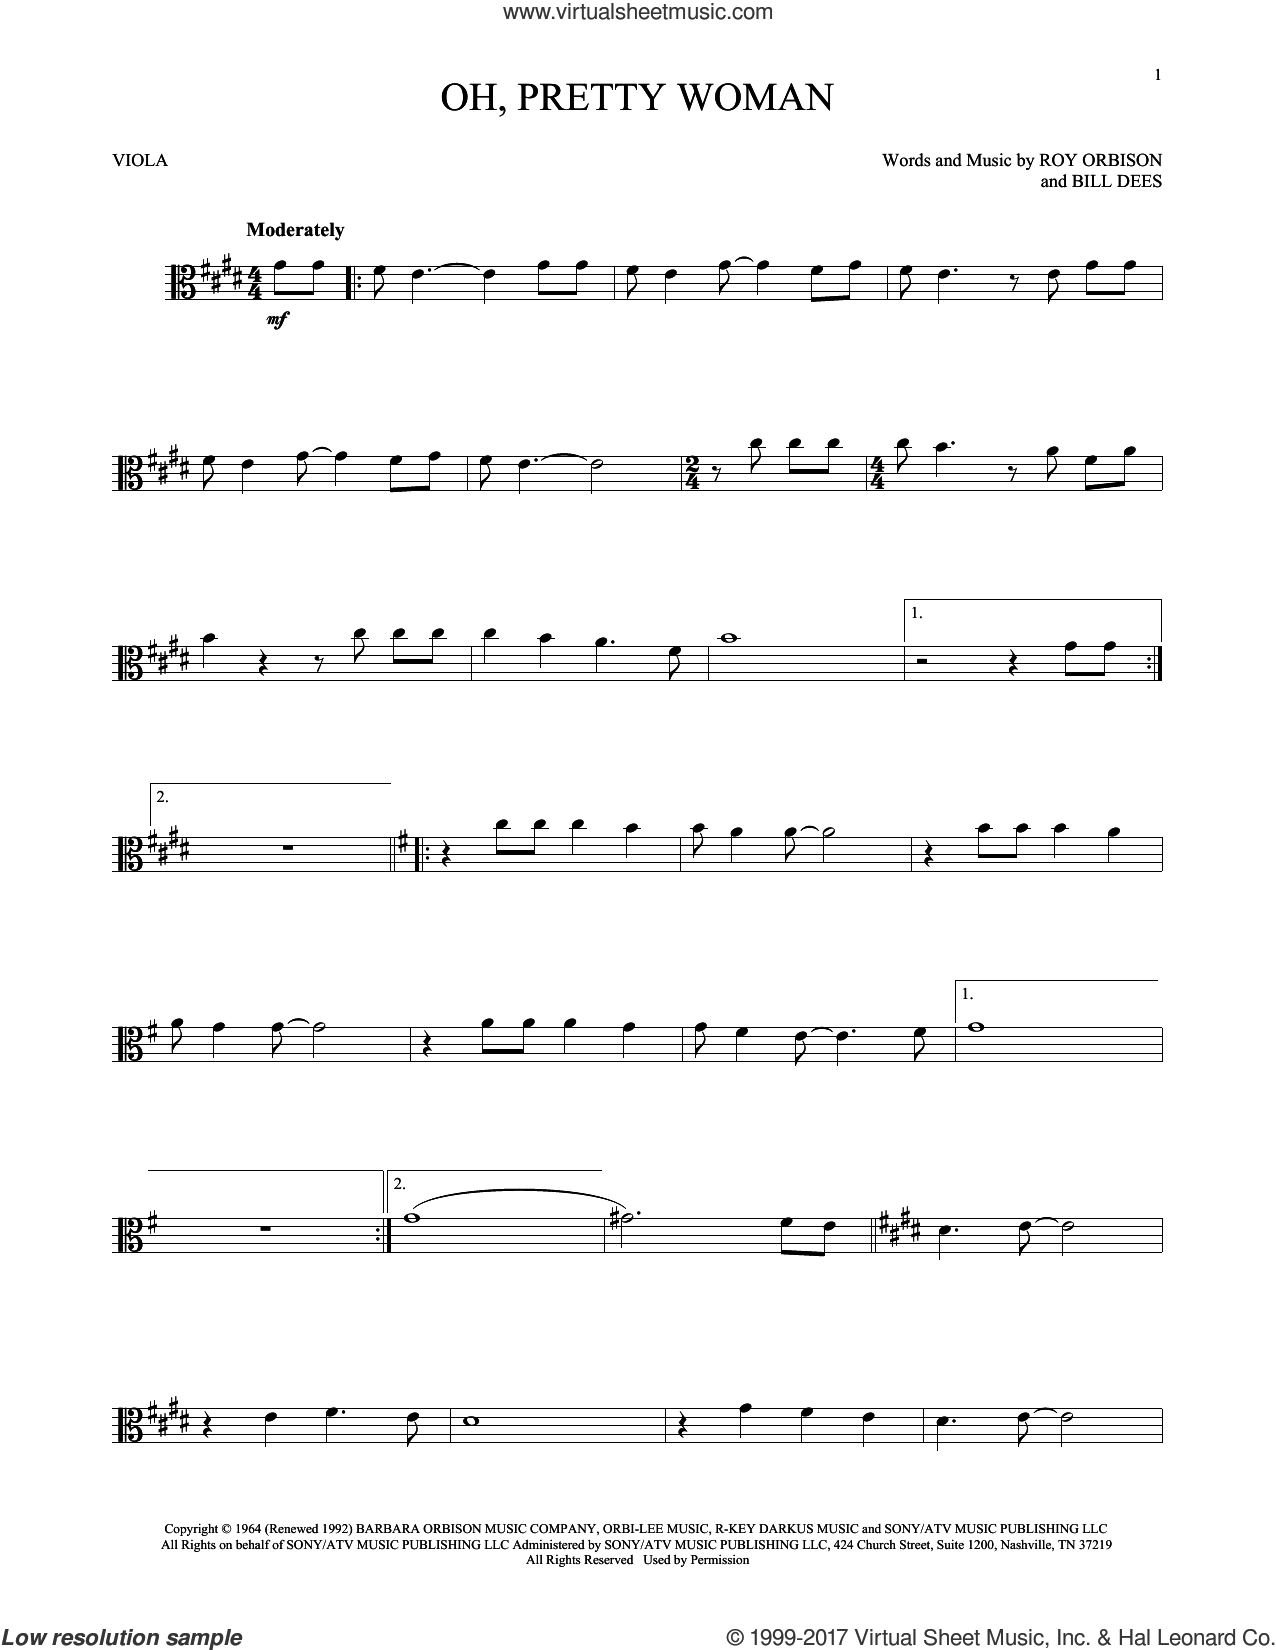 Oh, Pretty Woman sheet music for viola solo by Roy Orbison and Bill Dees, intermediate